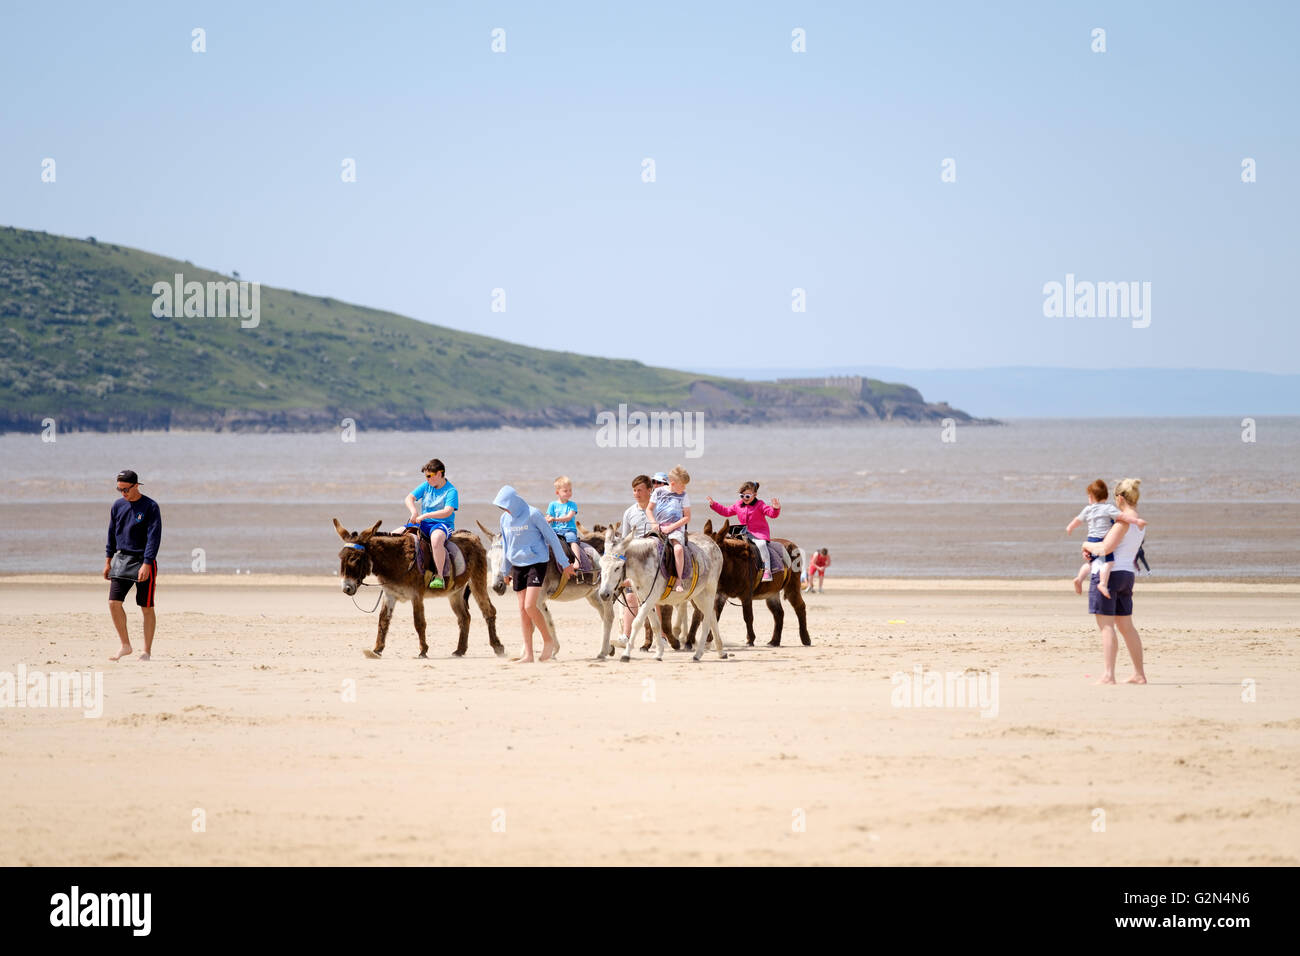 A group of children riding along a beach on seaside donkeys whilst a mother and child watch them Stock Photo